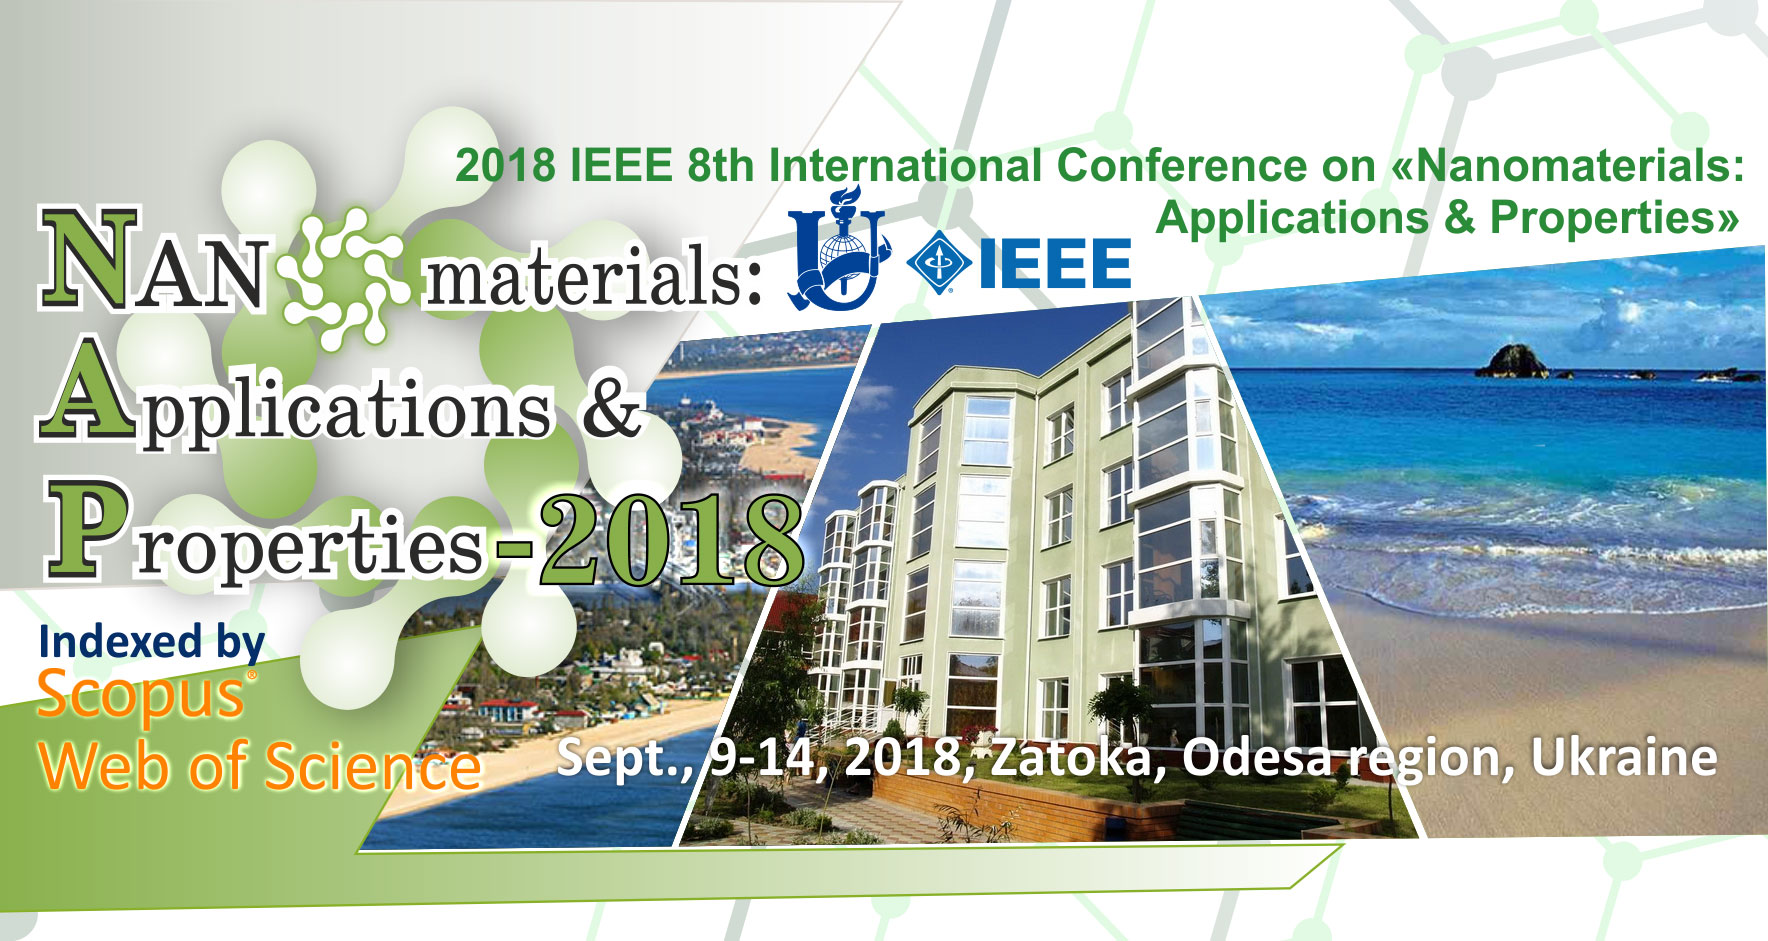 "2018 IEEE International Conference on ""Nanomaterials Applications & Properties"""